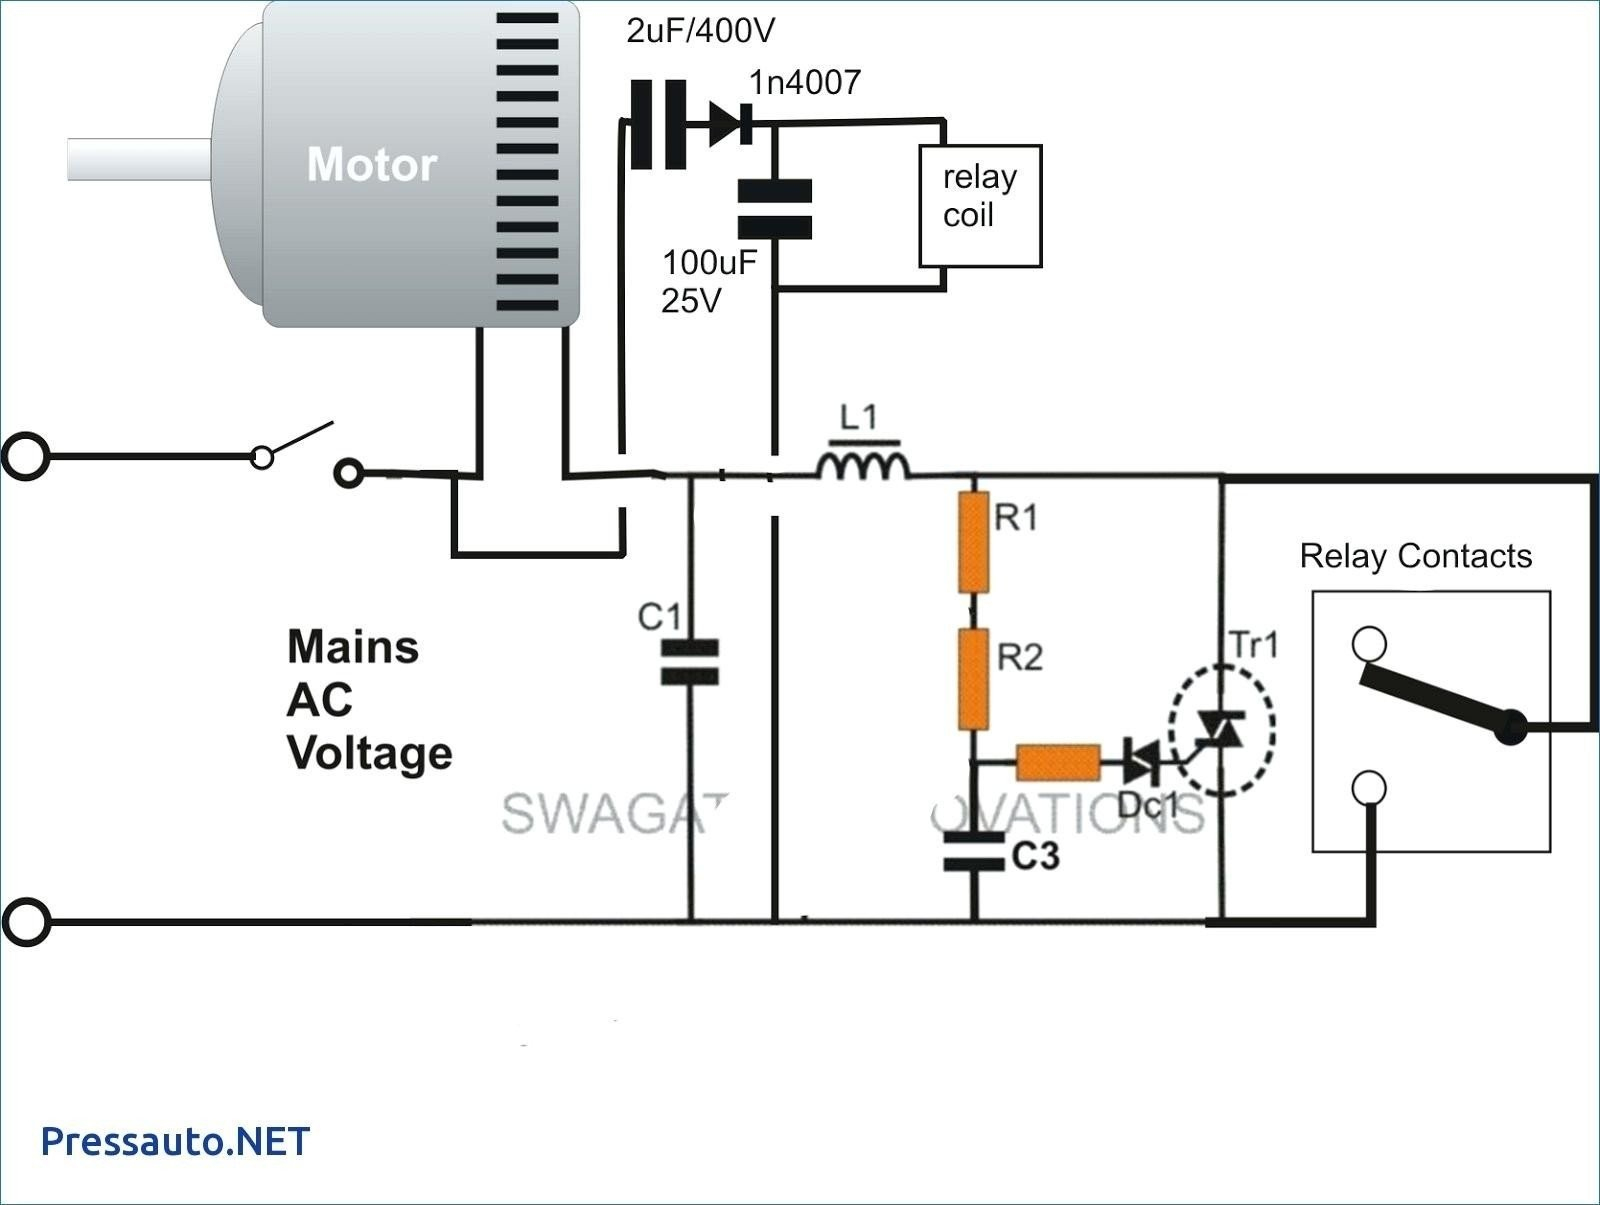 Magnetic Motor Starter Wiring Diagram For Or - Panoramabypatysesma - Motor Starter Wiring Diagram